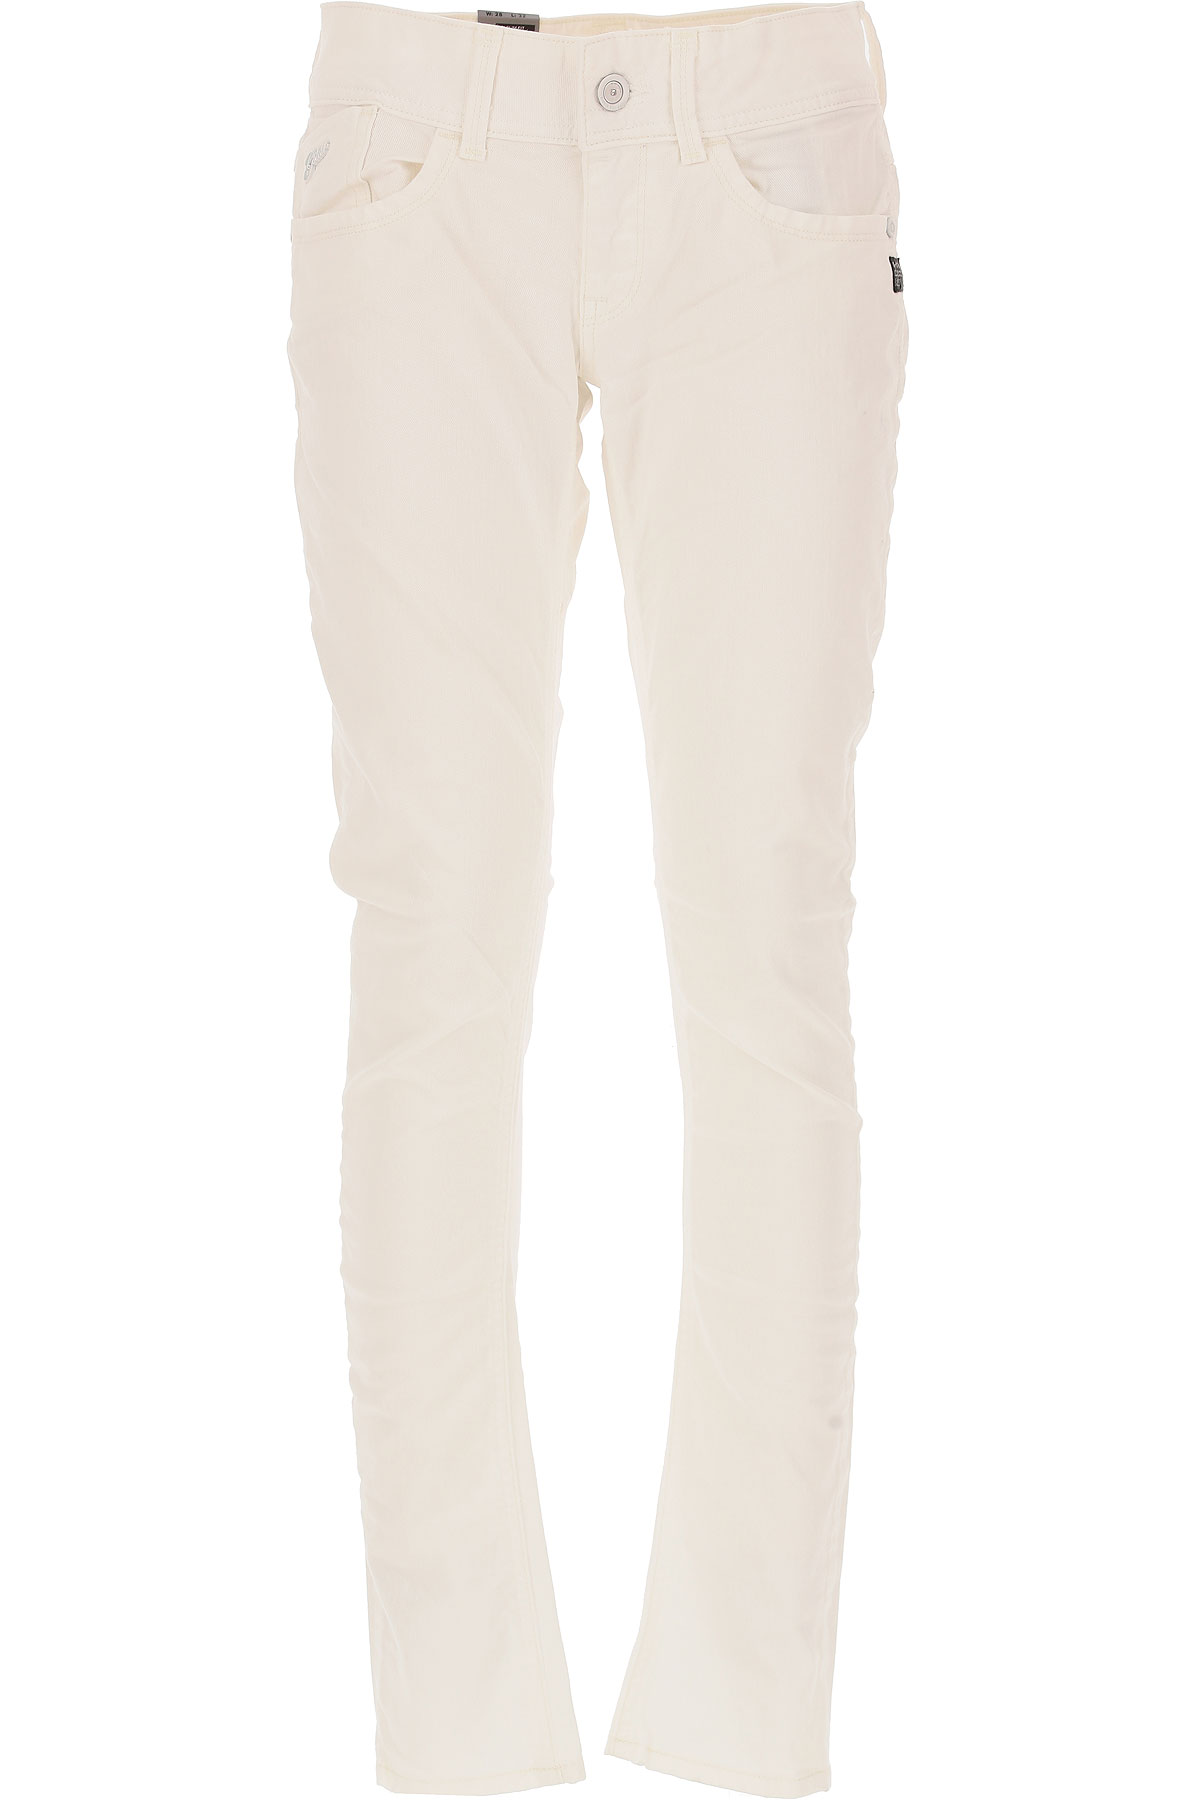 G-Star Jeans On Sale in Outlet, White, Cotton, 2017, 24 30